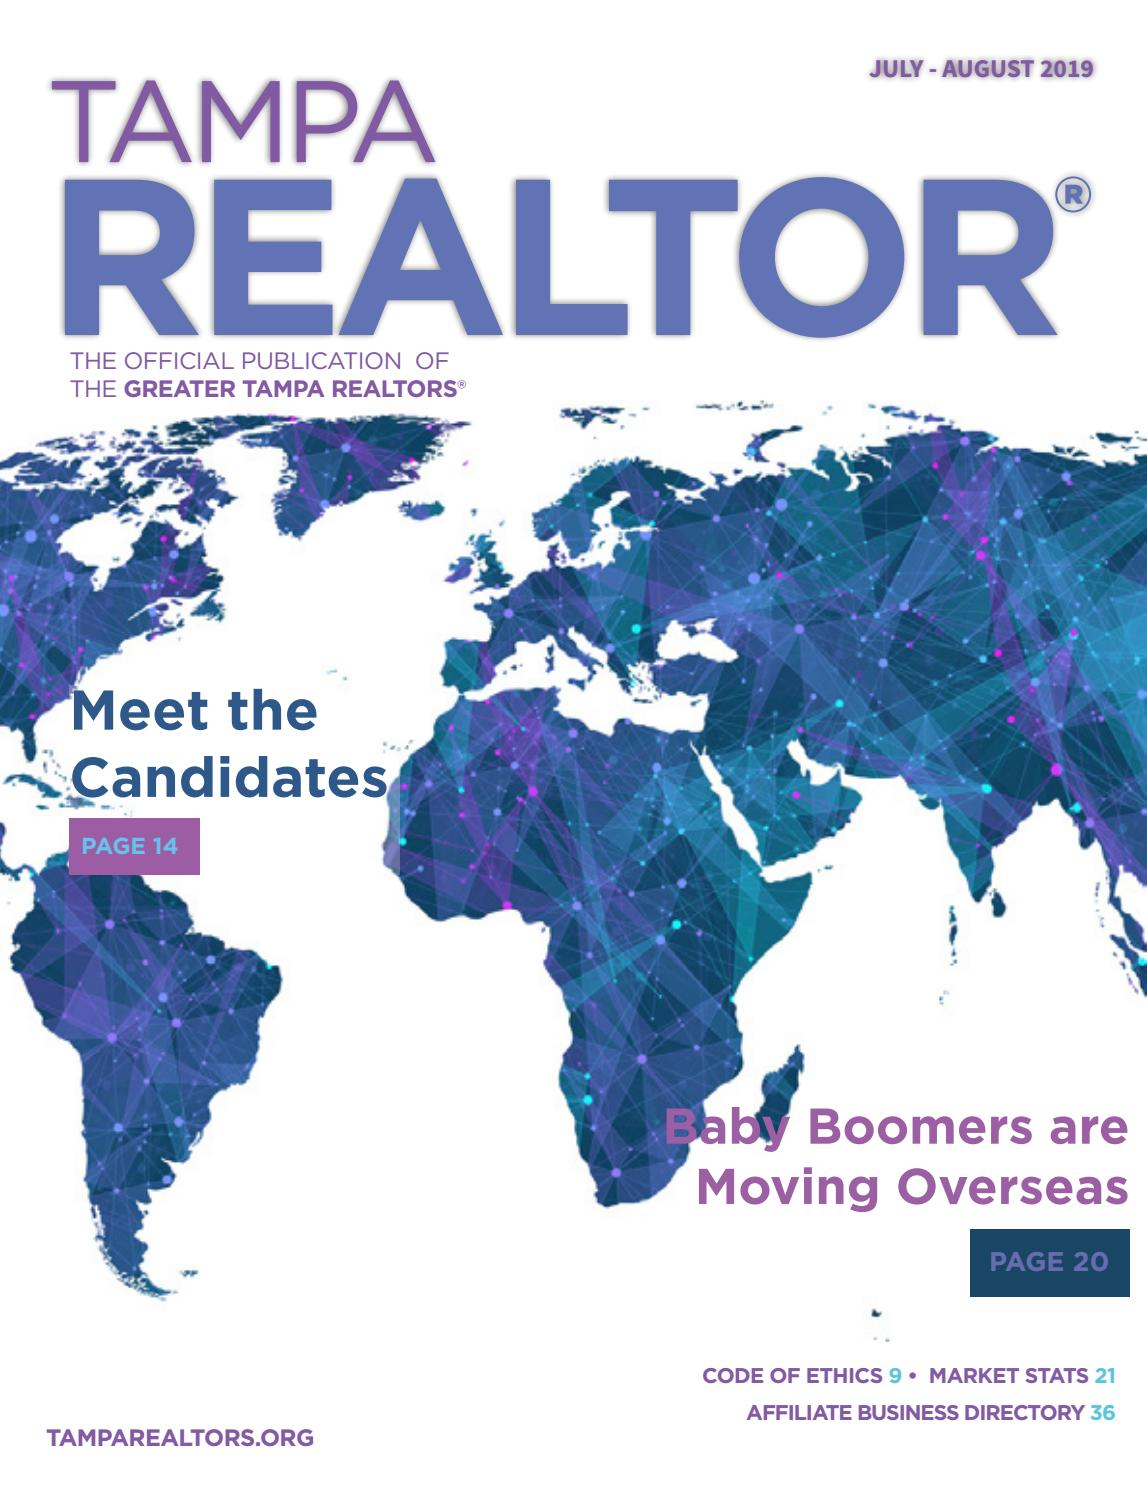 Tampa Realtor Magazine July August 2019 By Greater Tampa Realtors Issuu Census data showed an average annual growth of 2.47 percent, or a gain of approximately 97,000 residents per year. august 2019 by greater tampa realtors